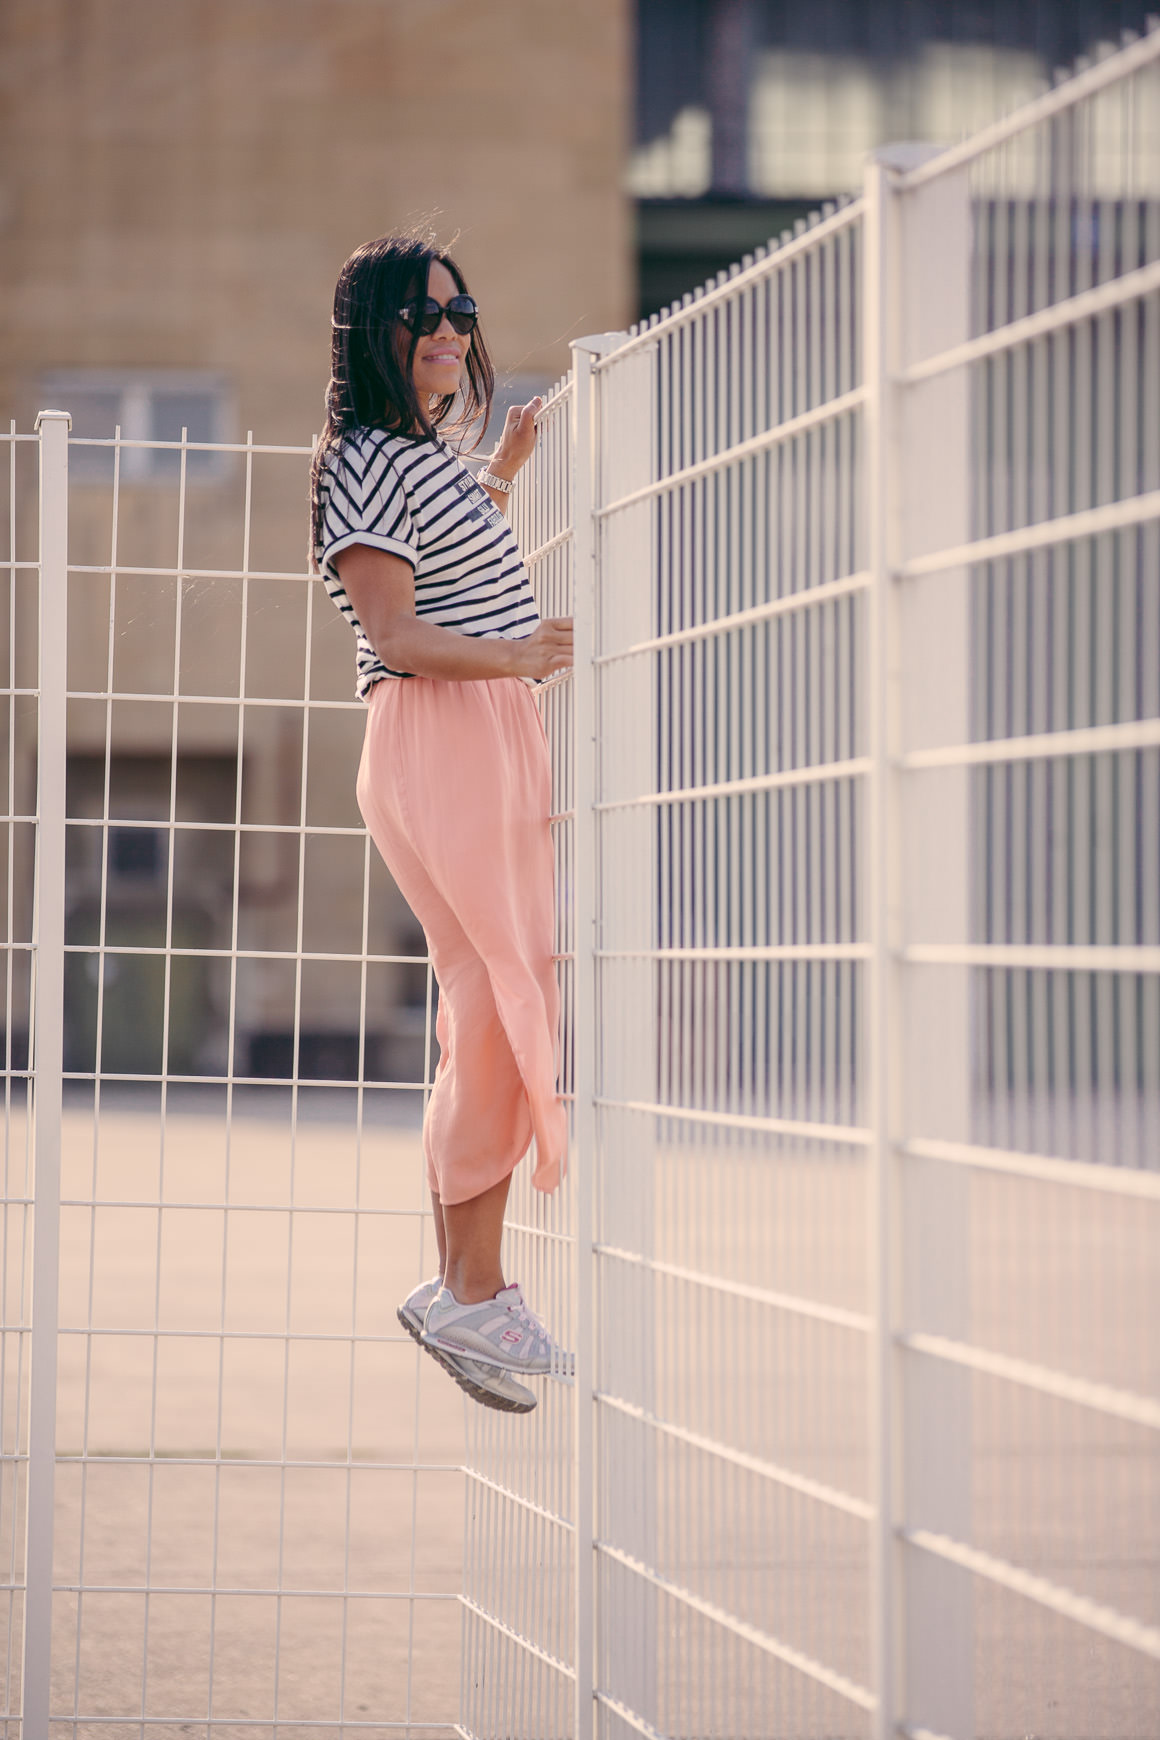 girl on fence - stripes fashion